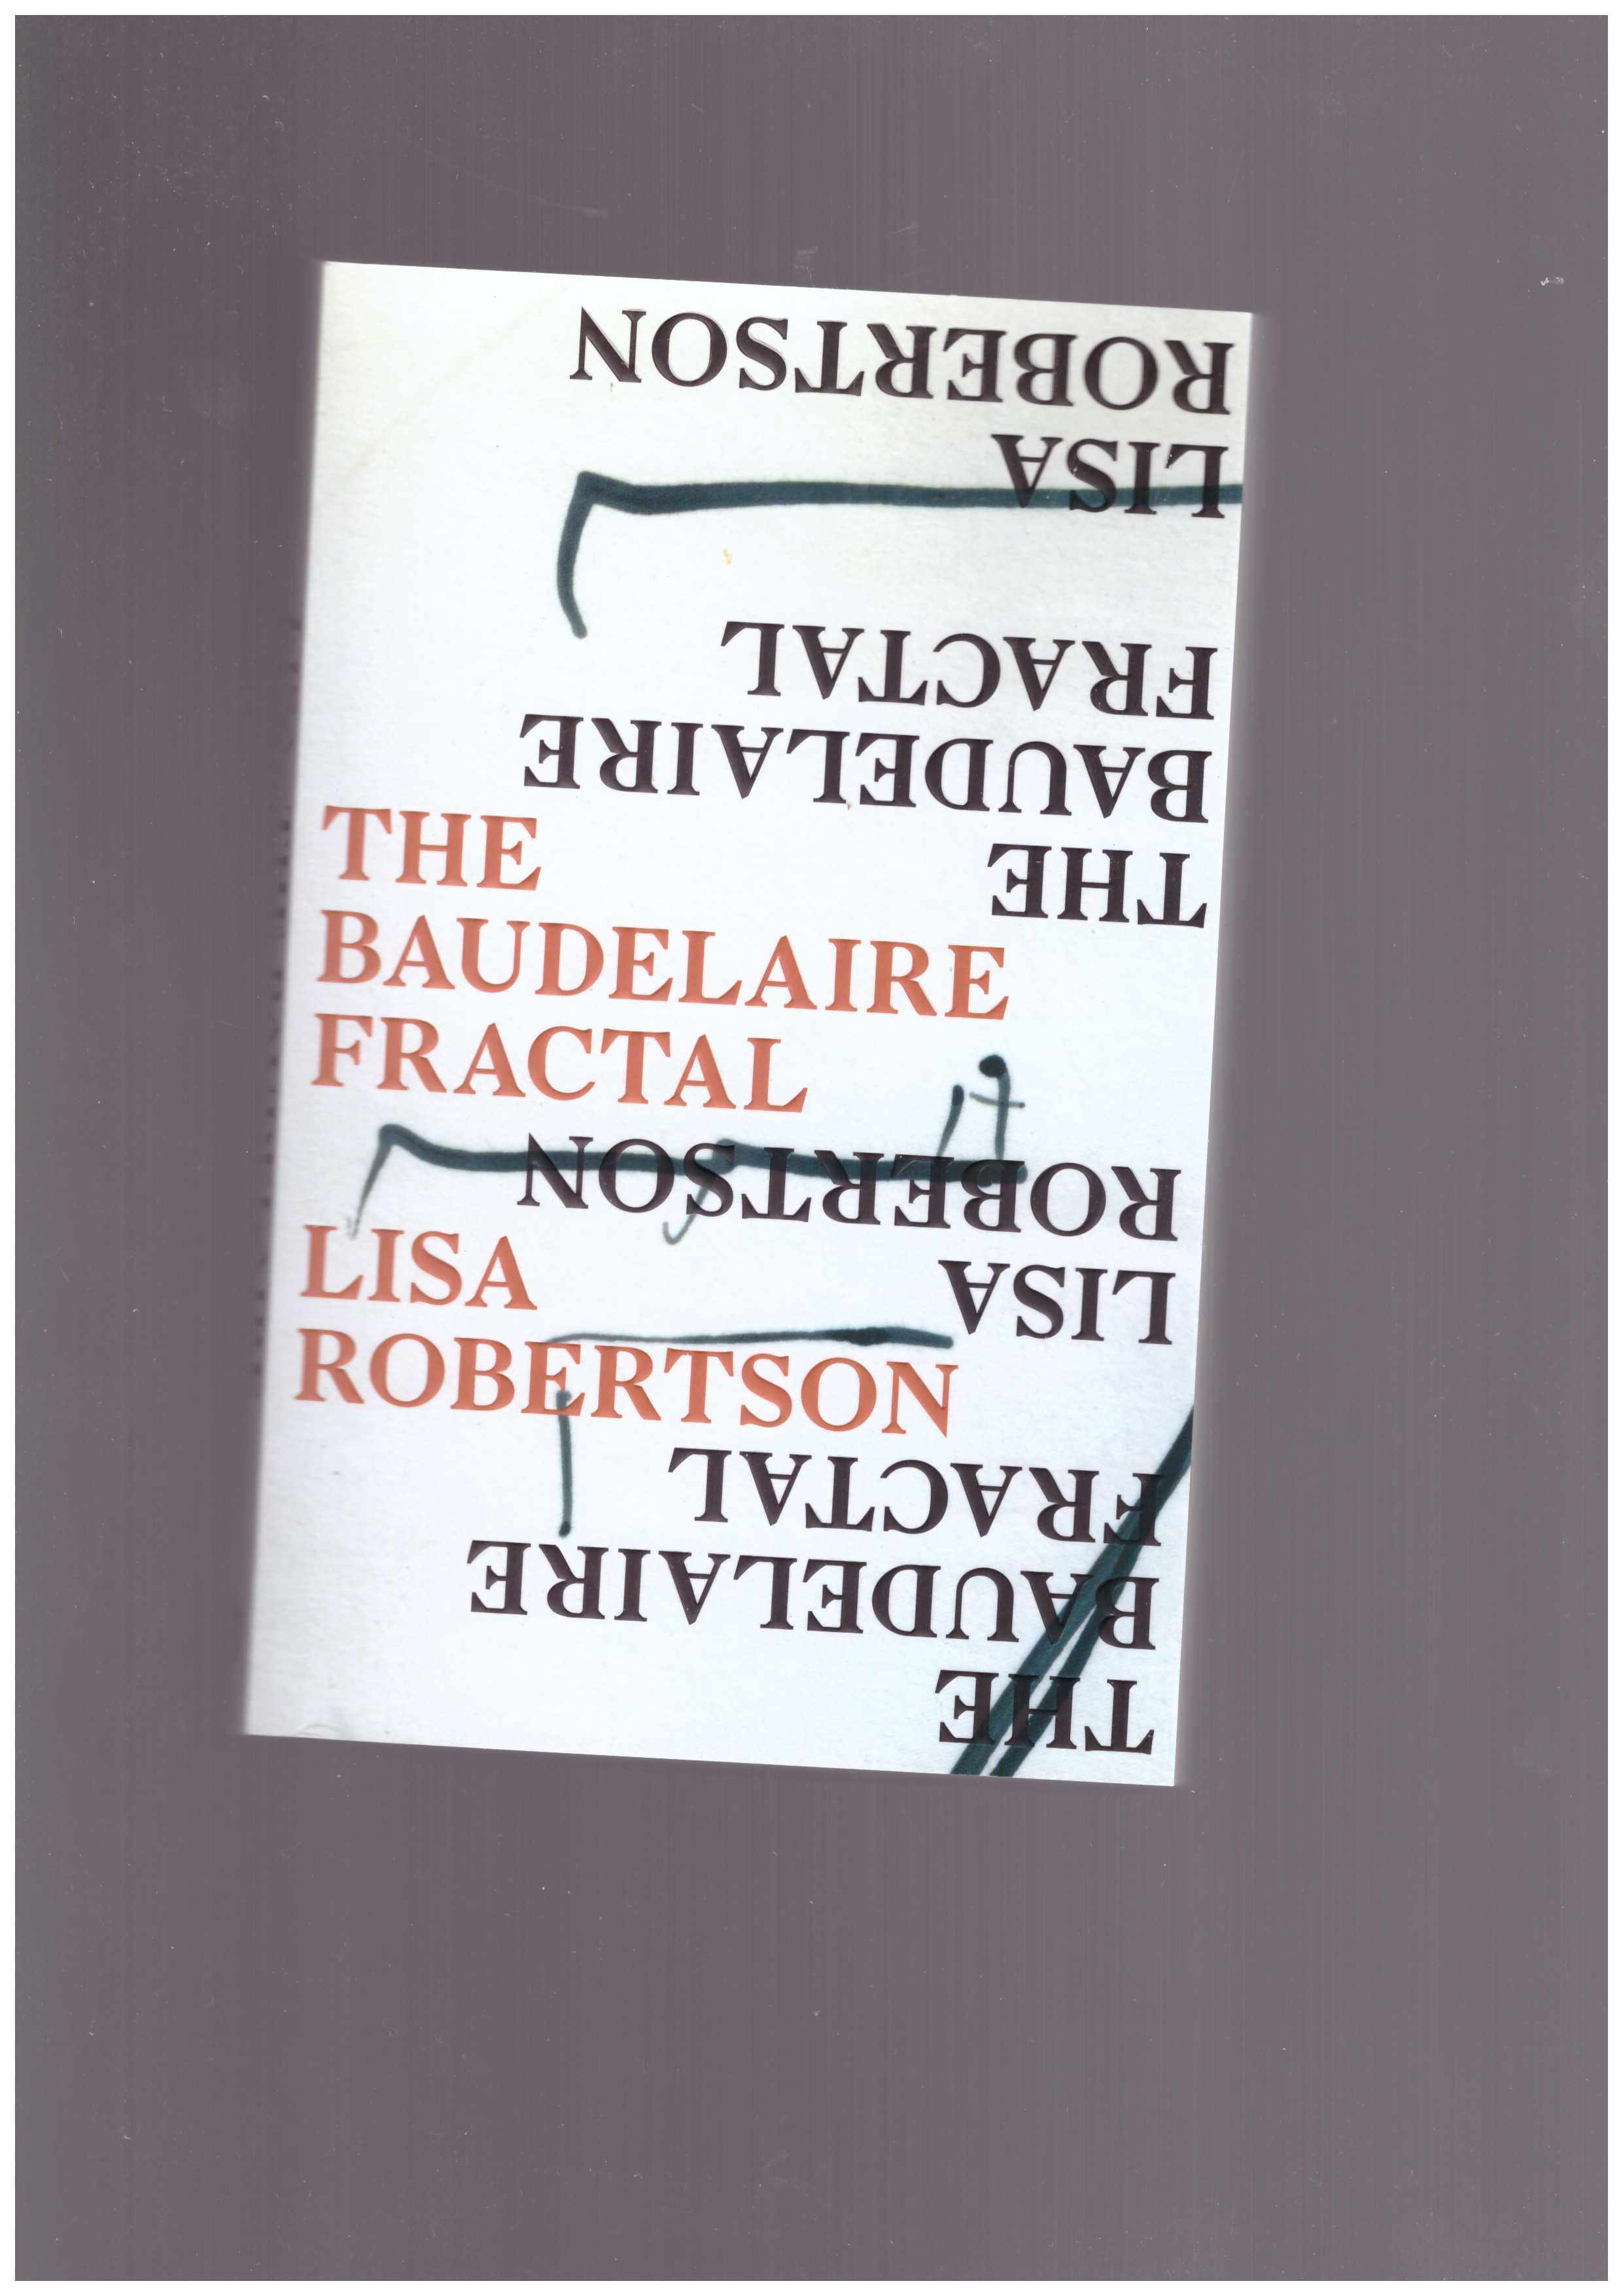 ROBERTSON, Lisa - The Baudelaire Fractal